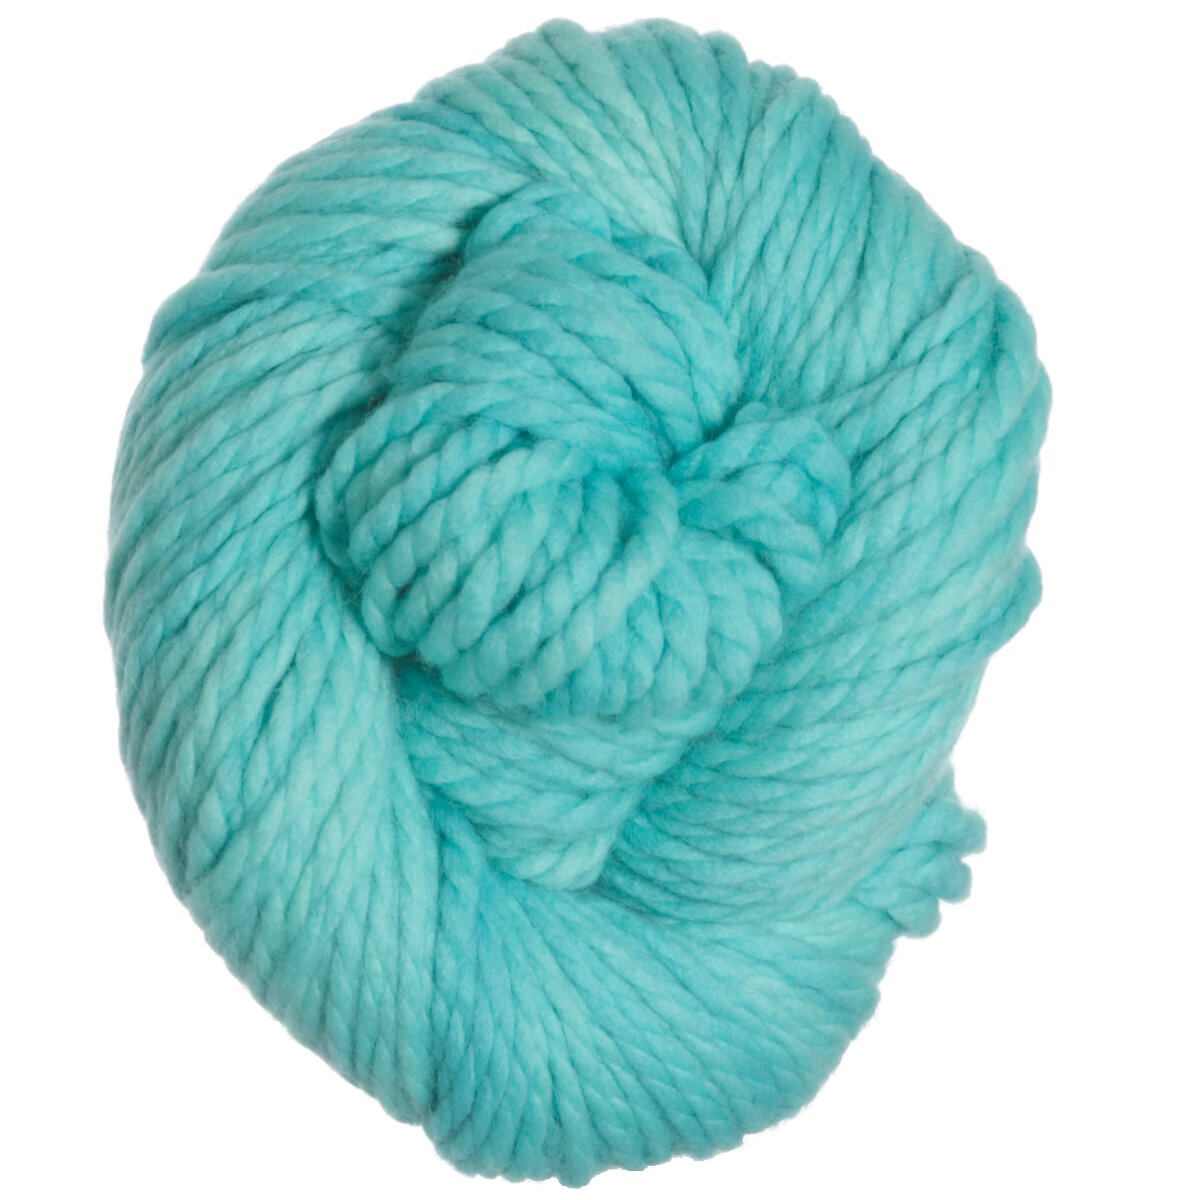 Madelinetosh Home Yarn Button Jar Blue Discontinued At